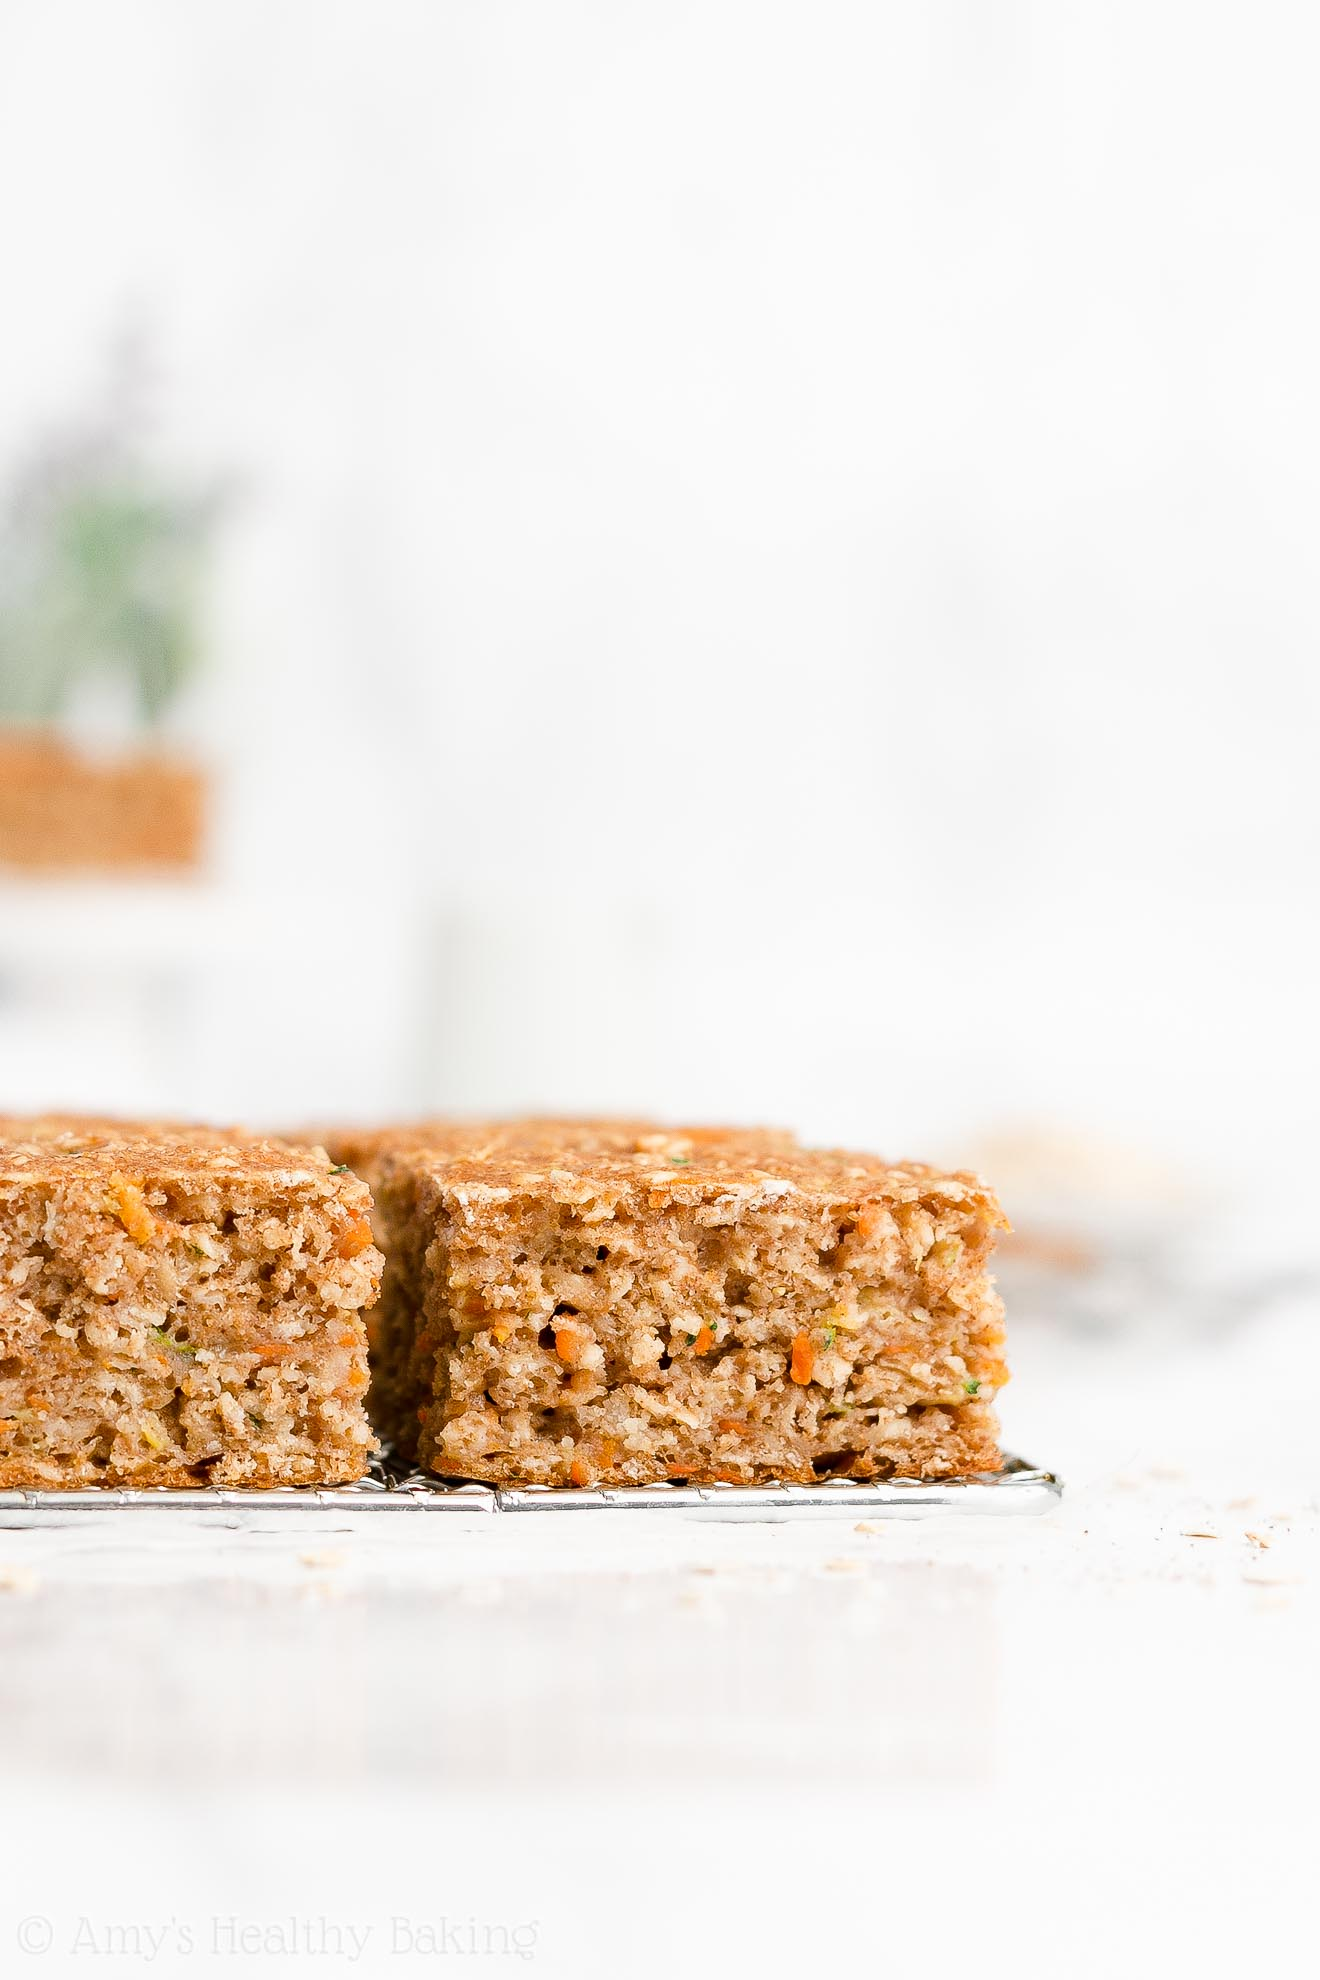 Easy Healthy Whole Wheat Low Fat Moist Carrot Zucchini Oatmeal Snack Cake